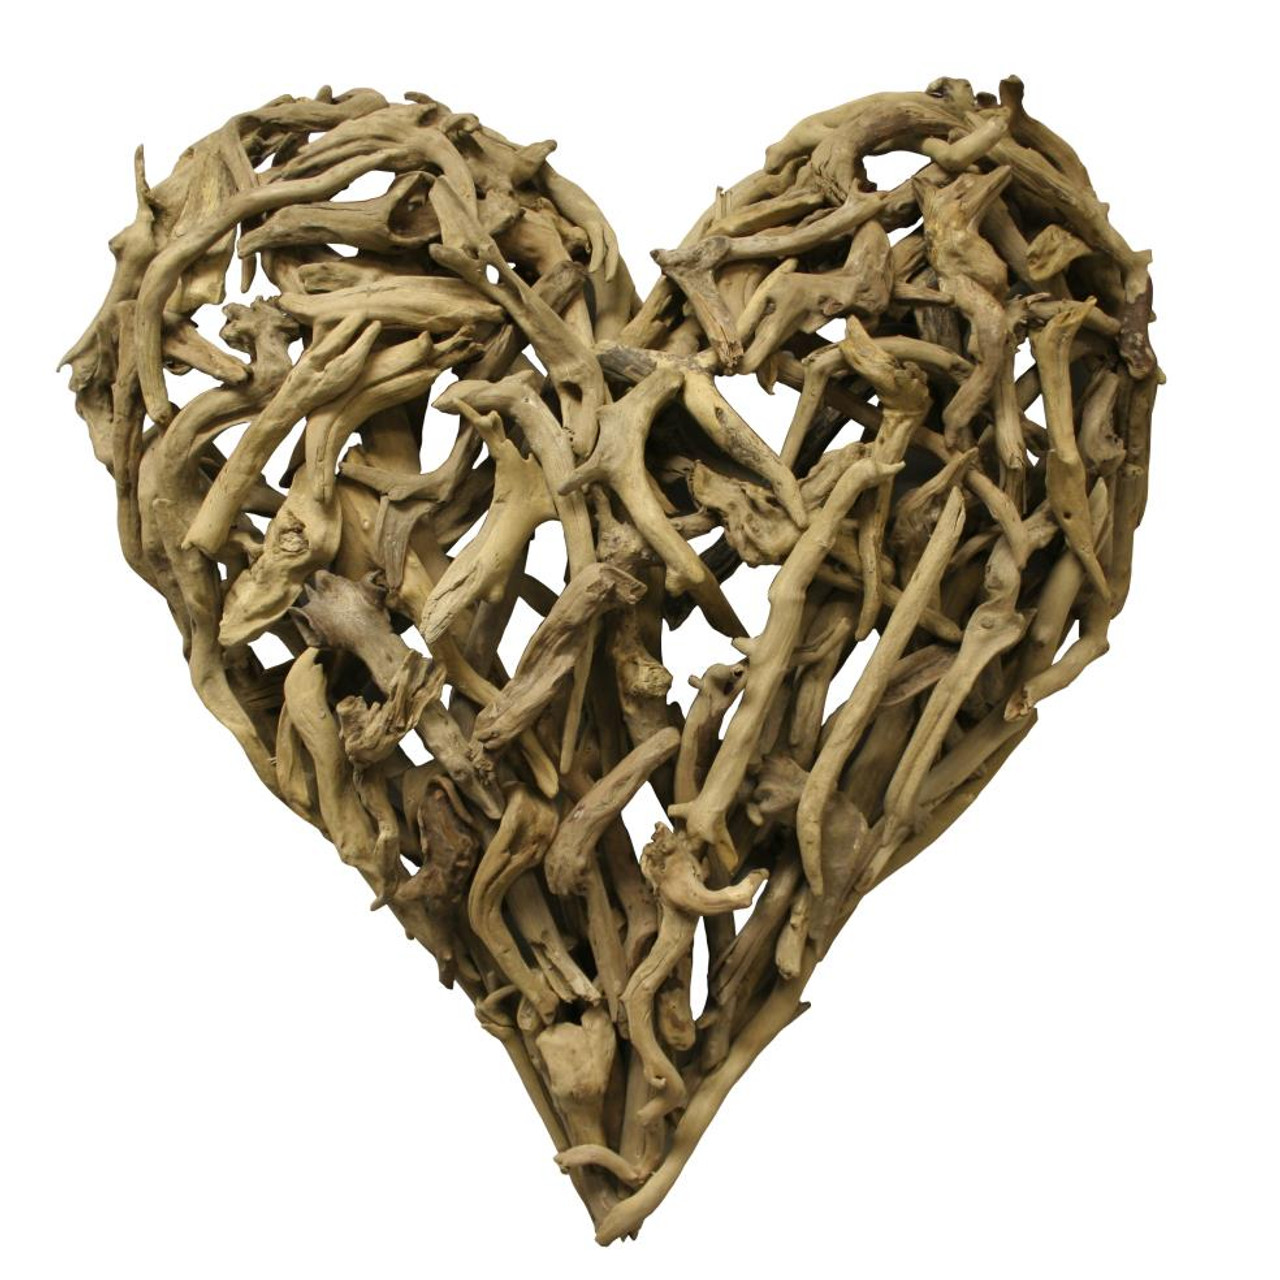 DRIFTWOOD HEART - LARGE